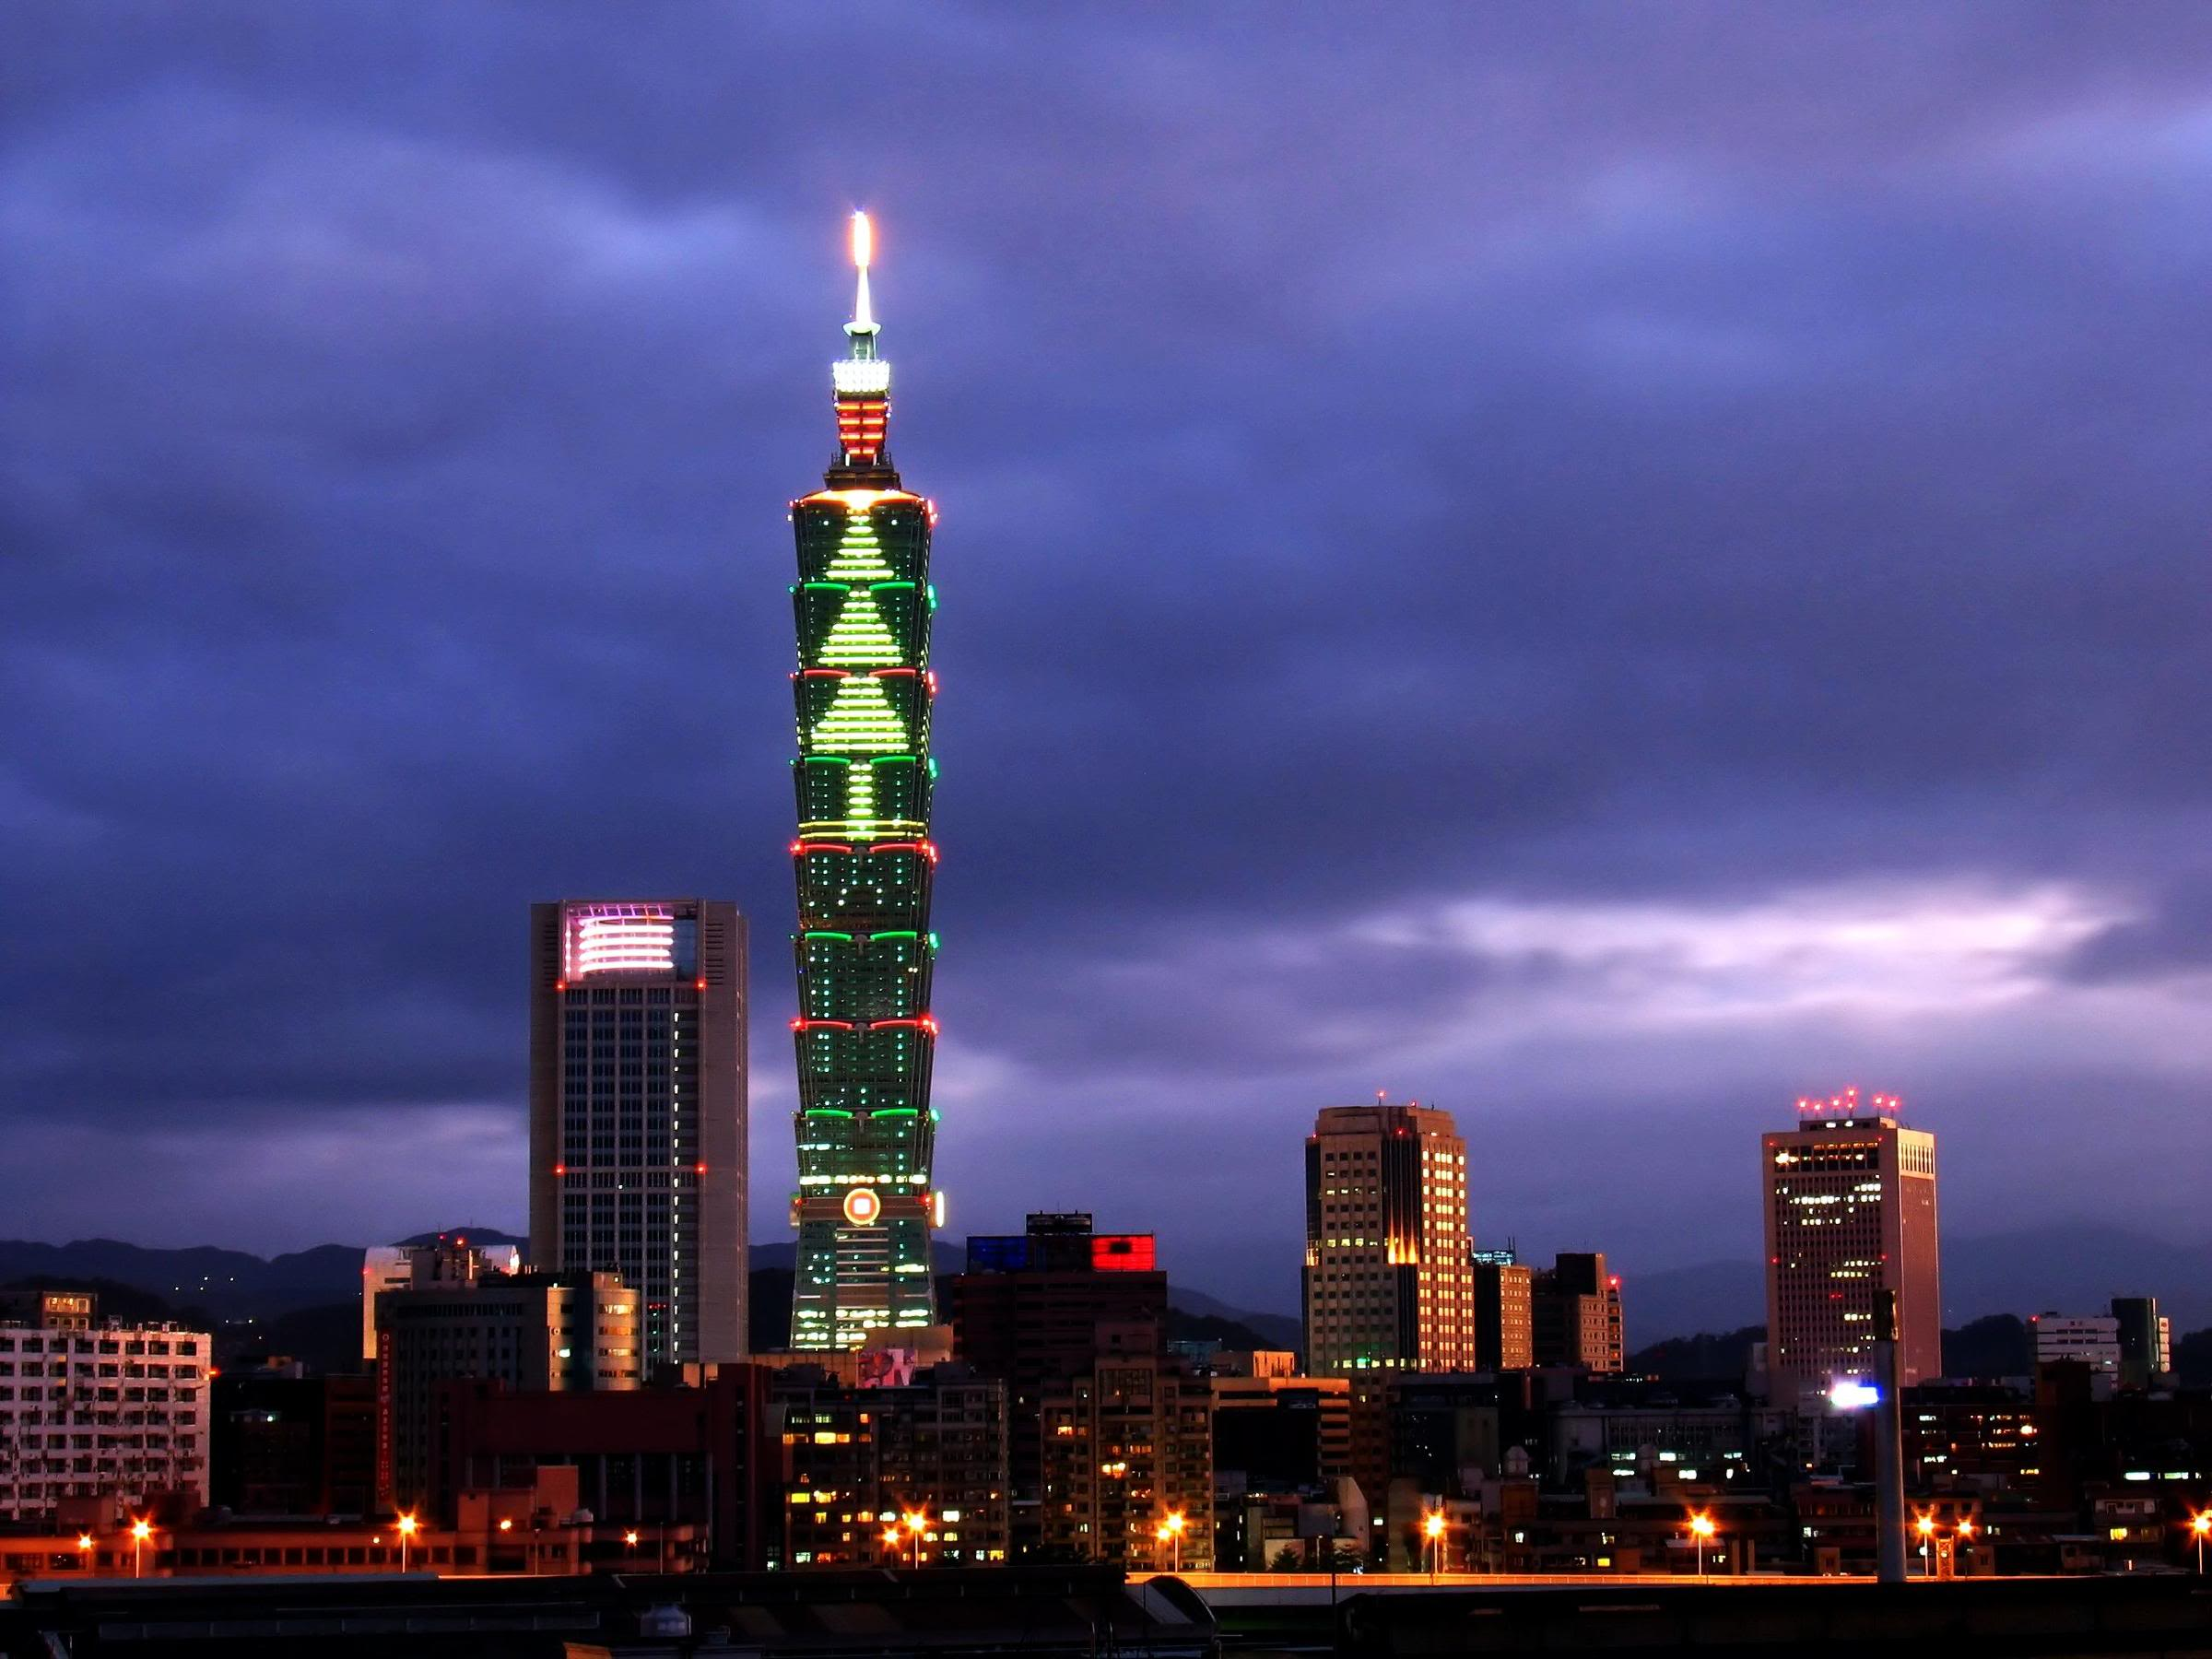 Designers Of Skyscrapers Today Routinely Evoke The Axis Mundi Symbolism  Inherent In Ancient Precedents Taipei 101 In Taiwan,pleted In 2004,